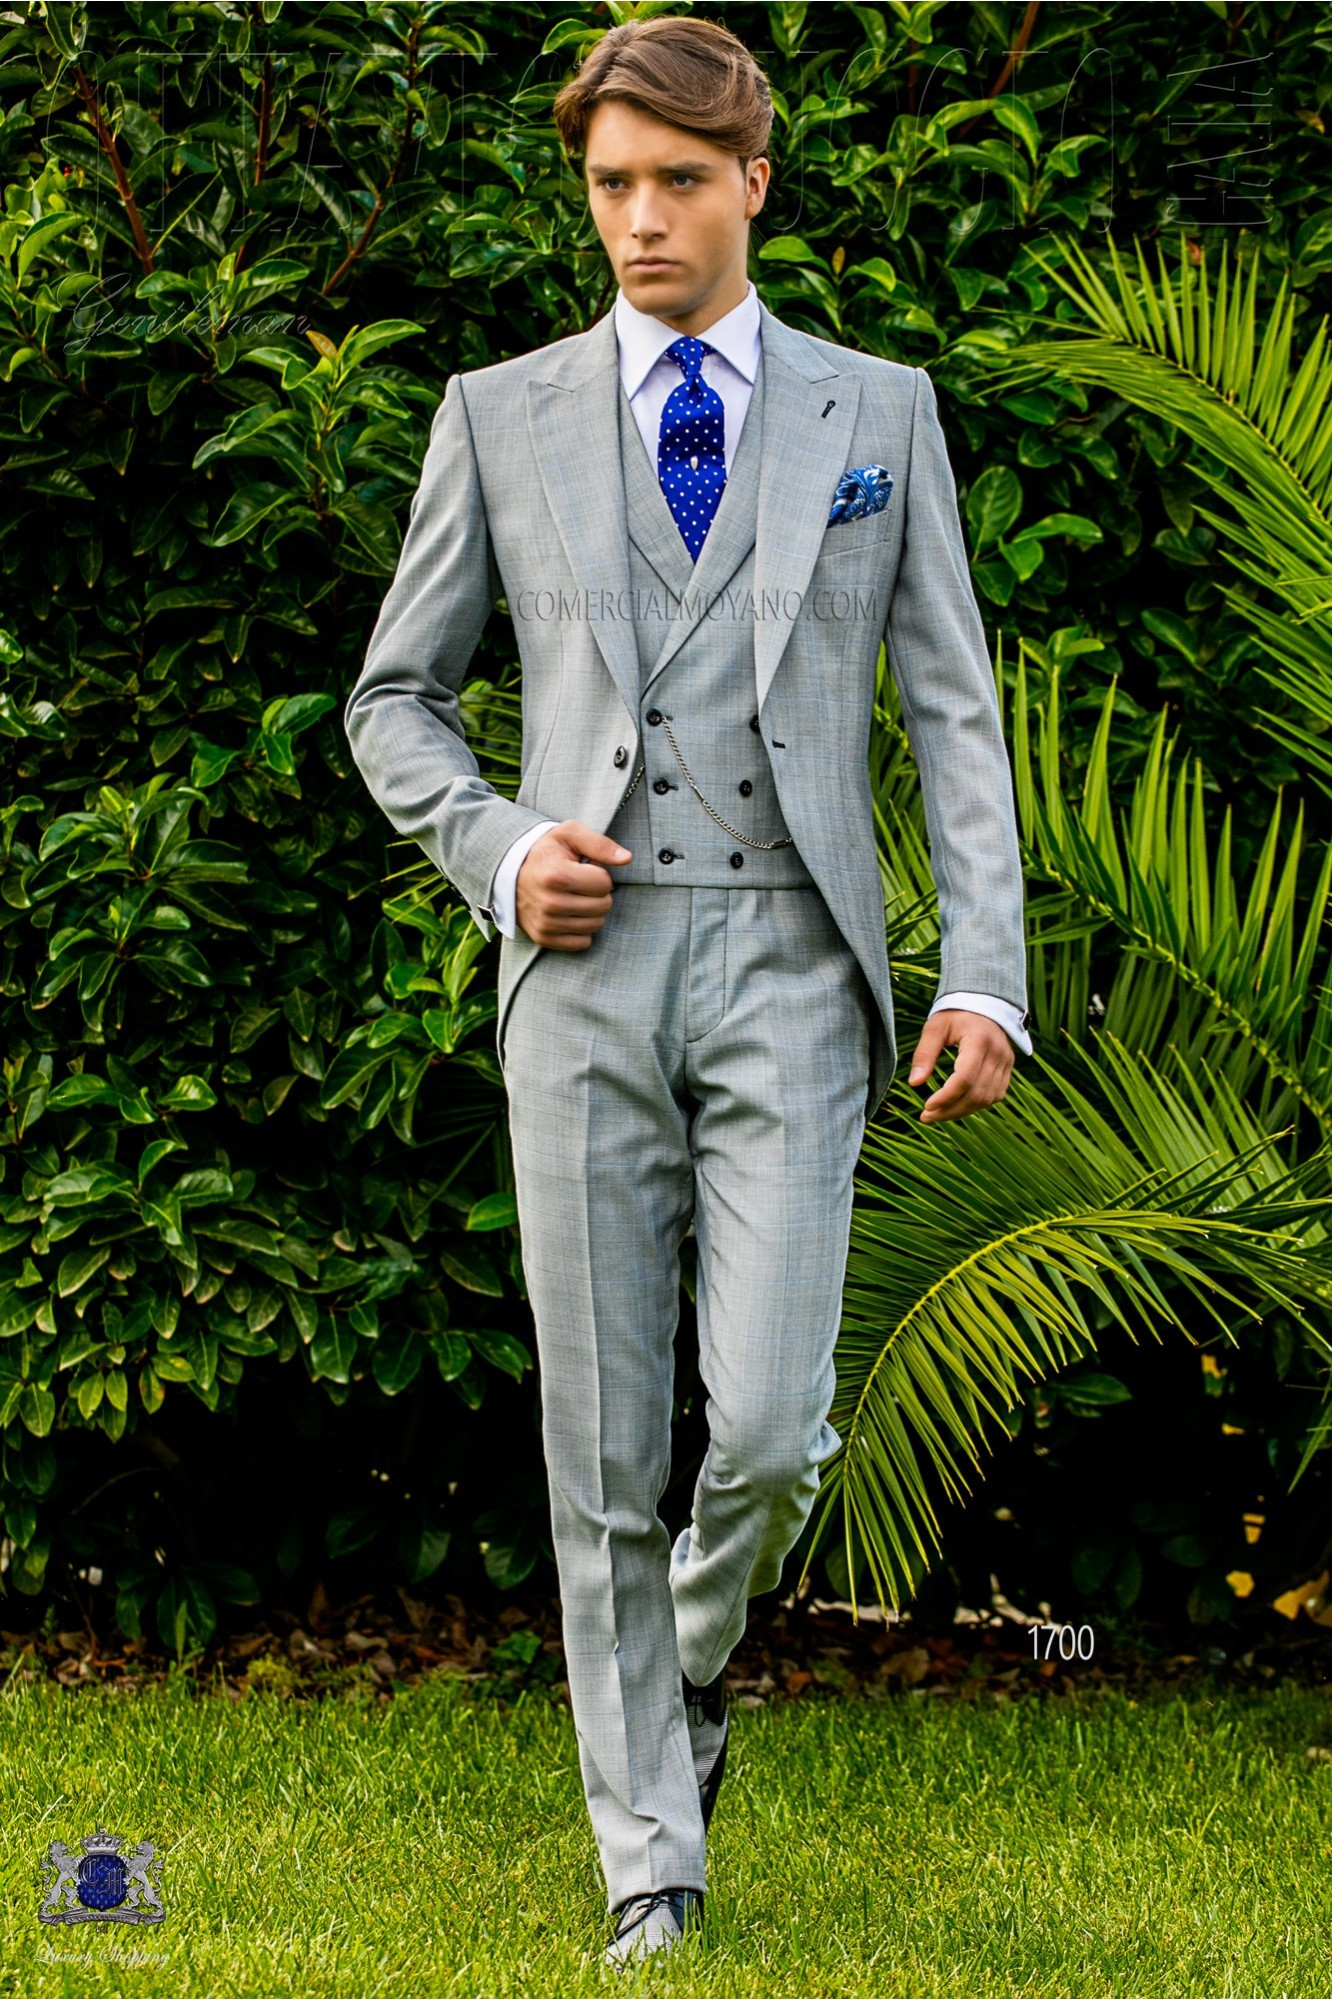 Bespoke Prince of Wales morning suit grey and light blue model 1700 Ottavio Nuccio Gala